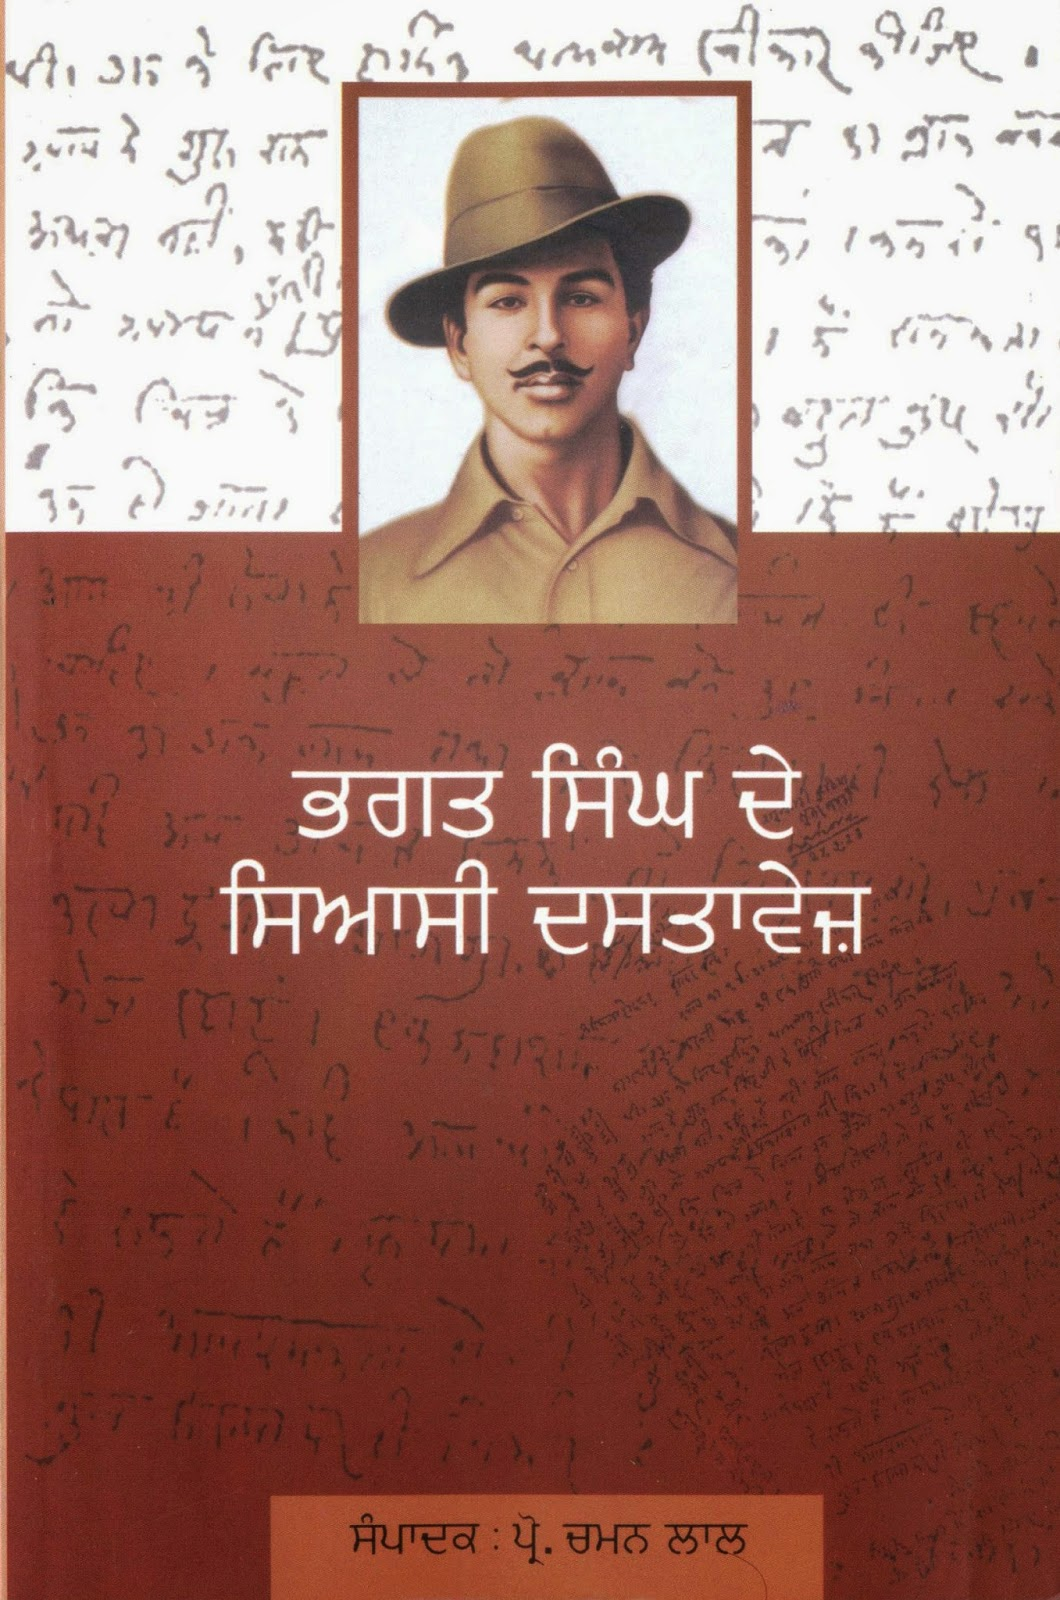 bhagat singh study chaman lal 2014 complete list of my books on bhagat singh and other revolutionaries whose titles are given here